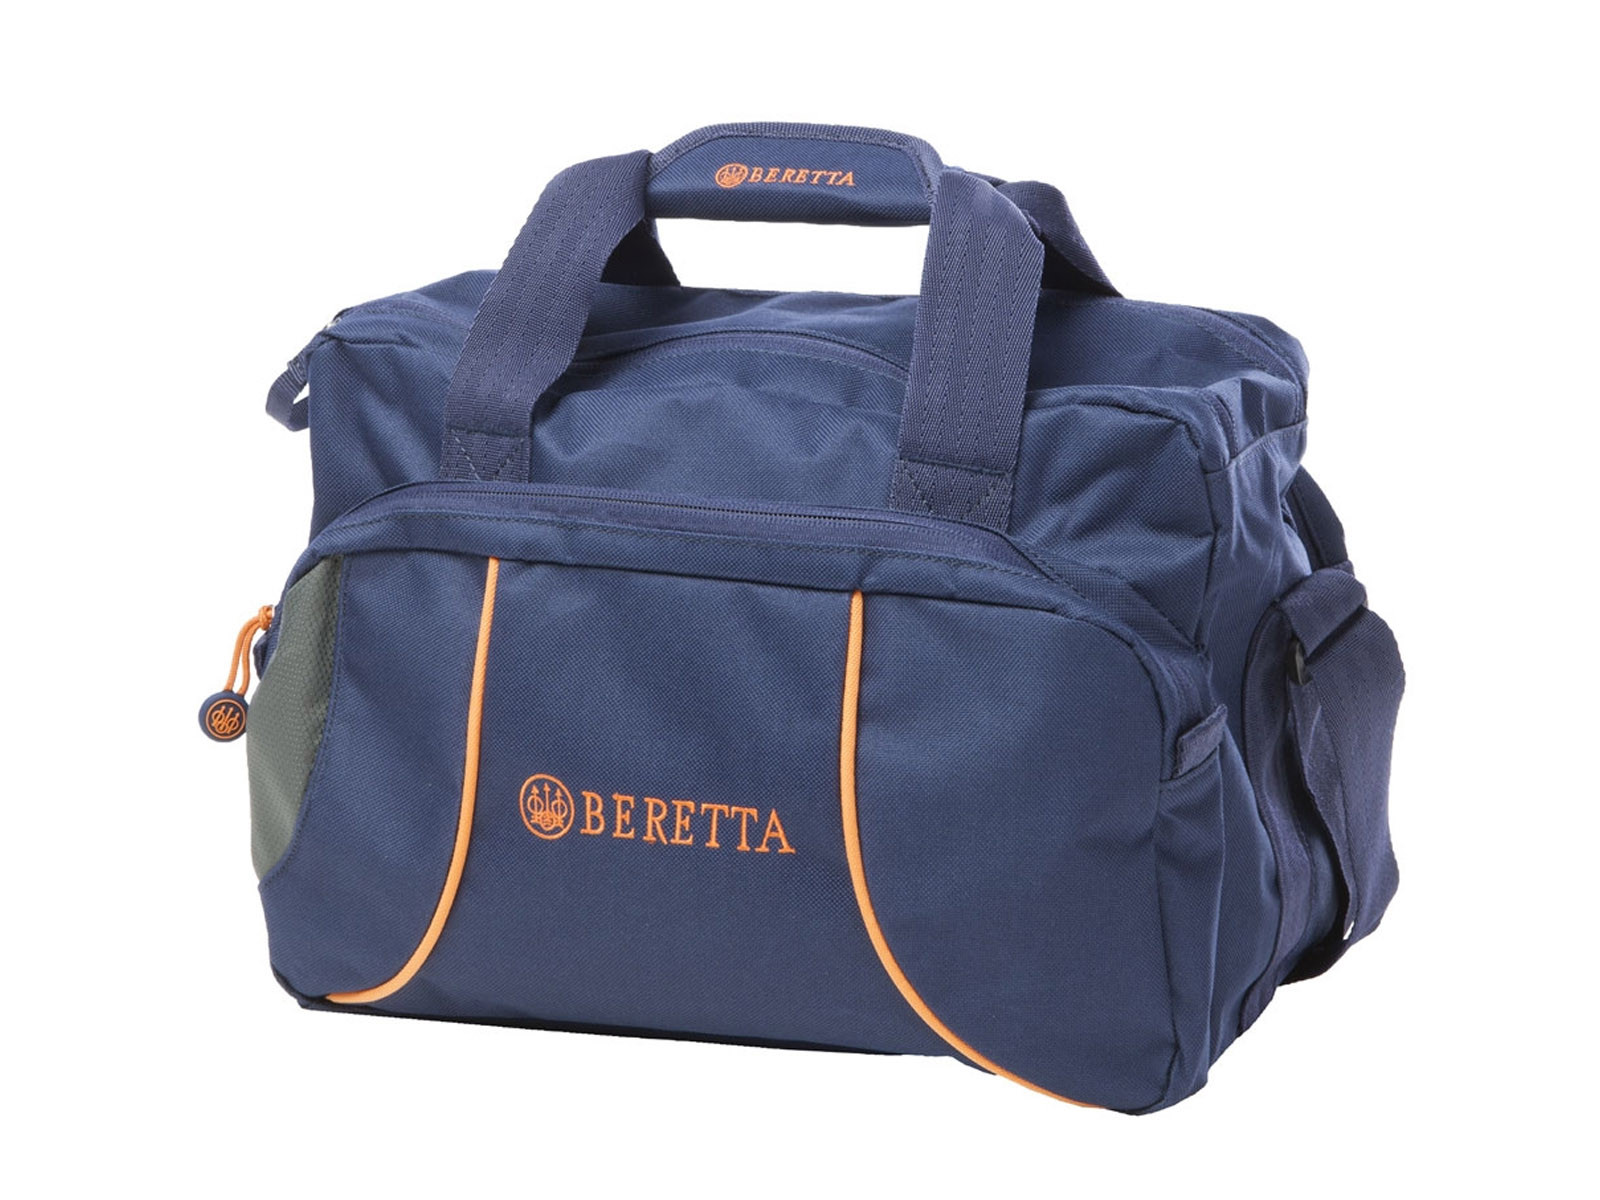 Beretta Uniform Pro 250 Bag - Blue